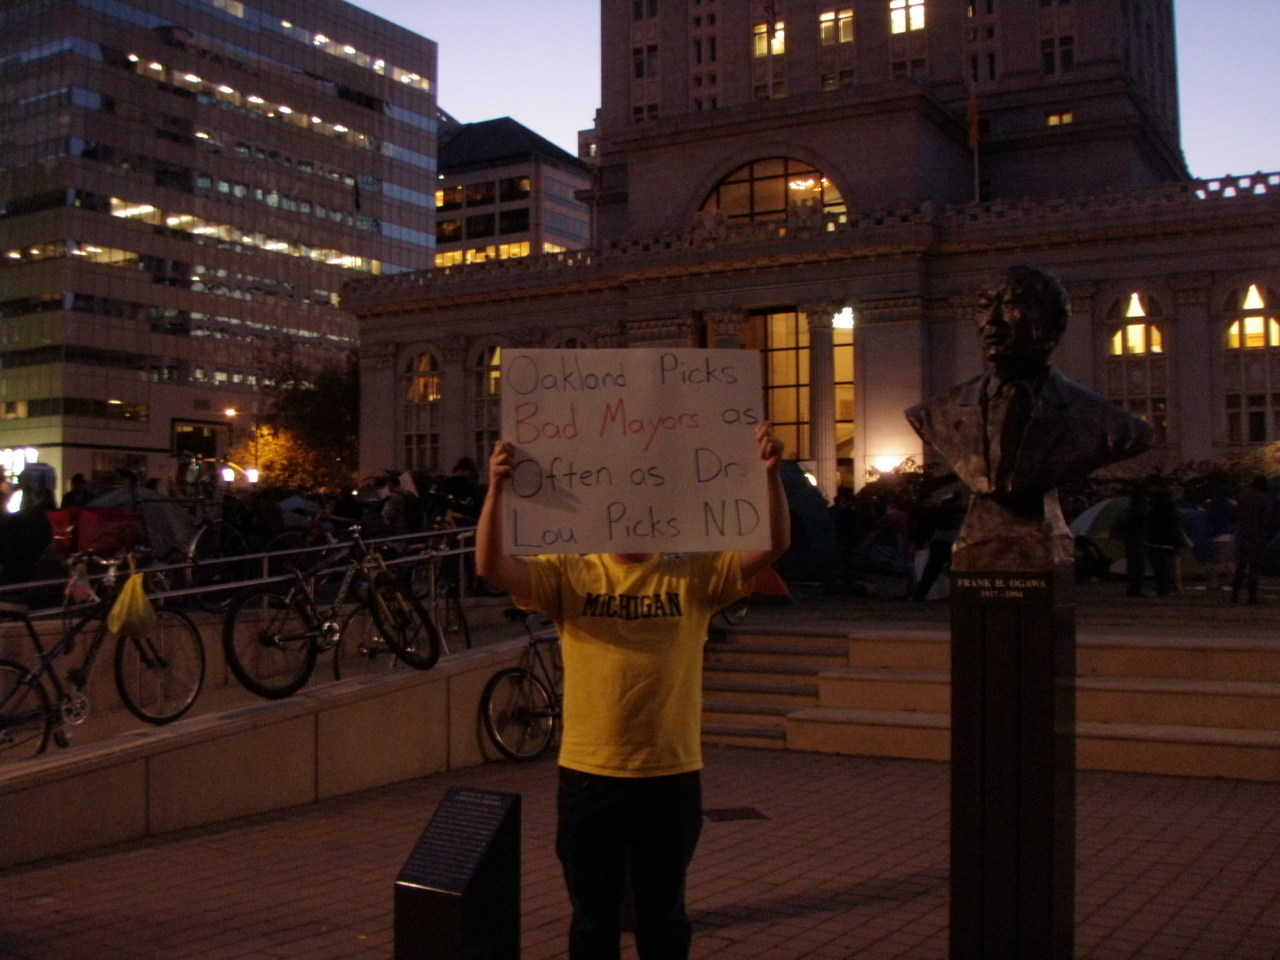 Our 5th ZuccottiBraid goes to Rob at Occupy Oakland for our favorite fan pic: Oakland Picks Bad Mayors as Often as Dr. Lou Picks Notre Dame